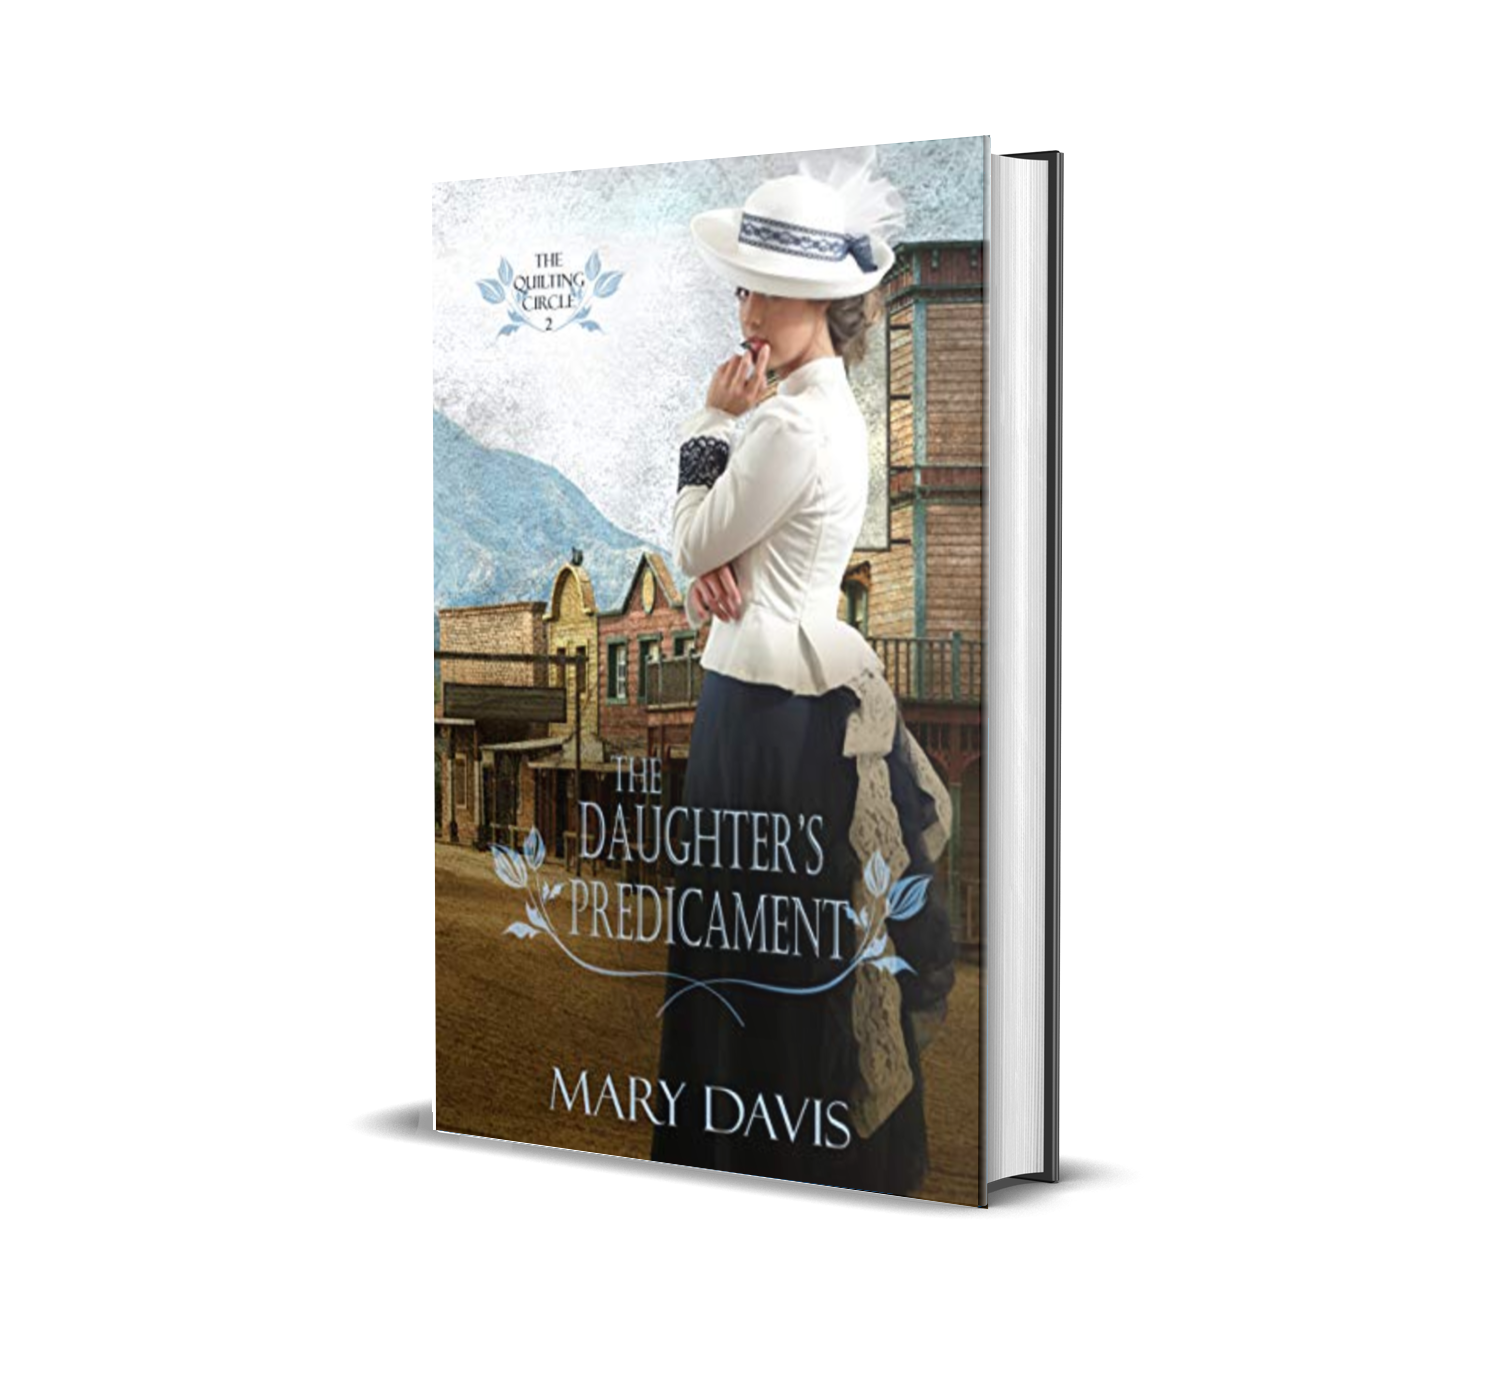 The Daughter's Predicament by Mary Davis